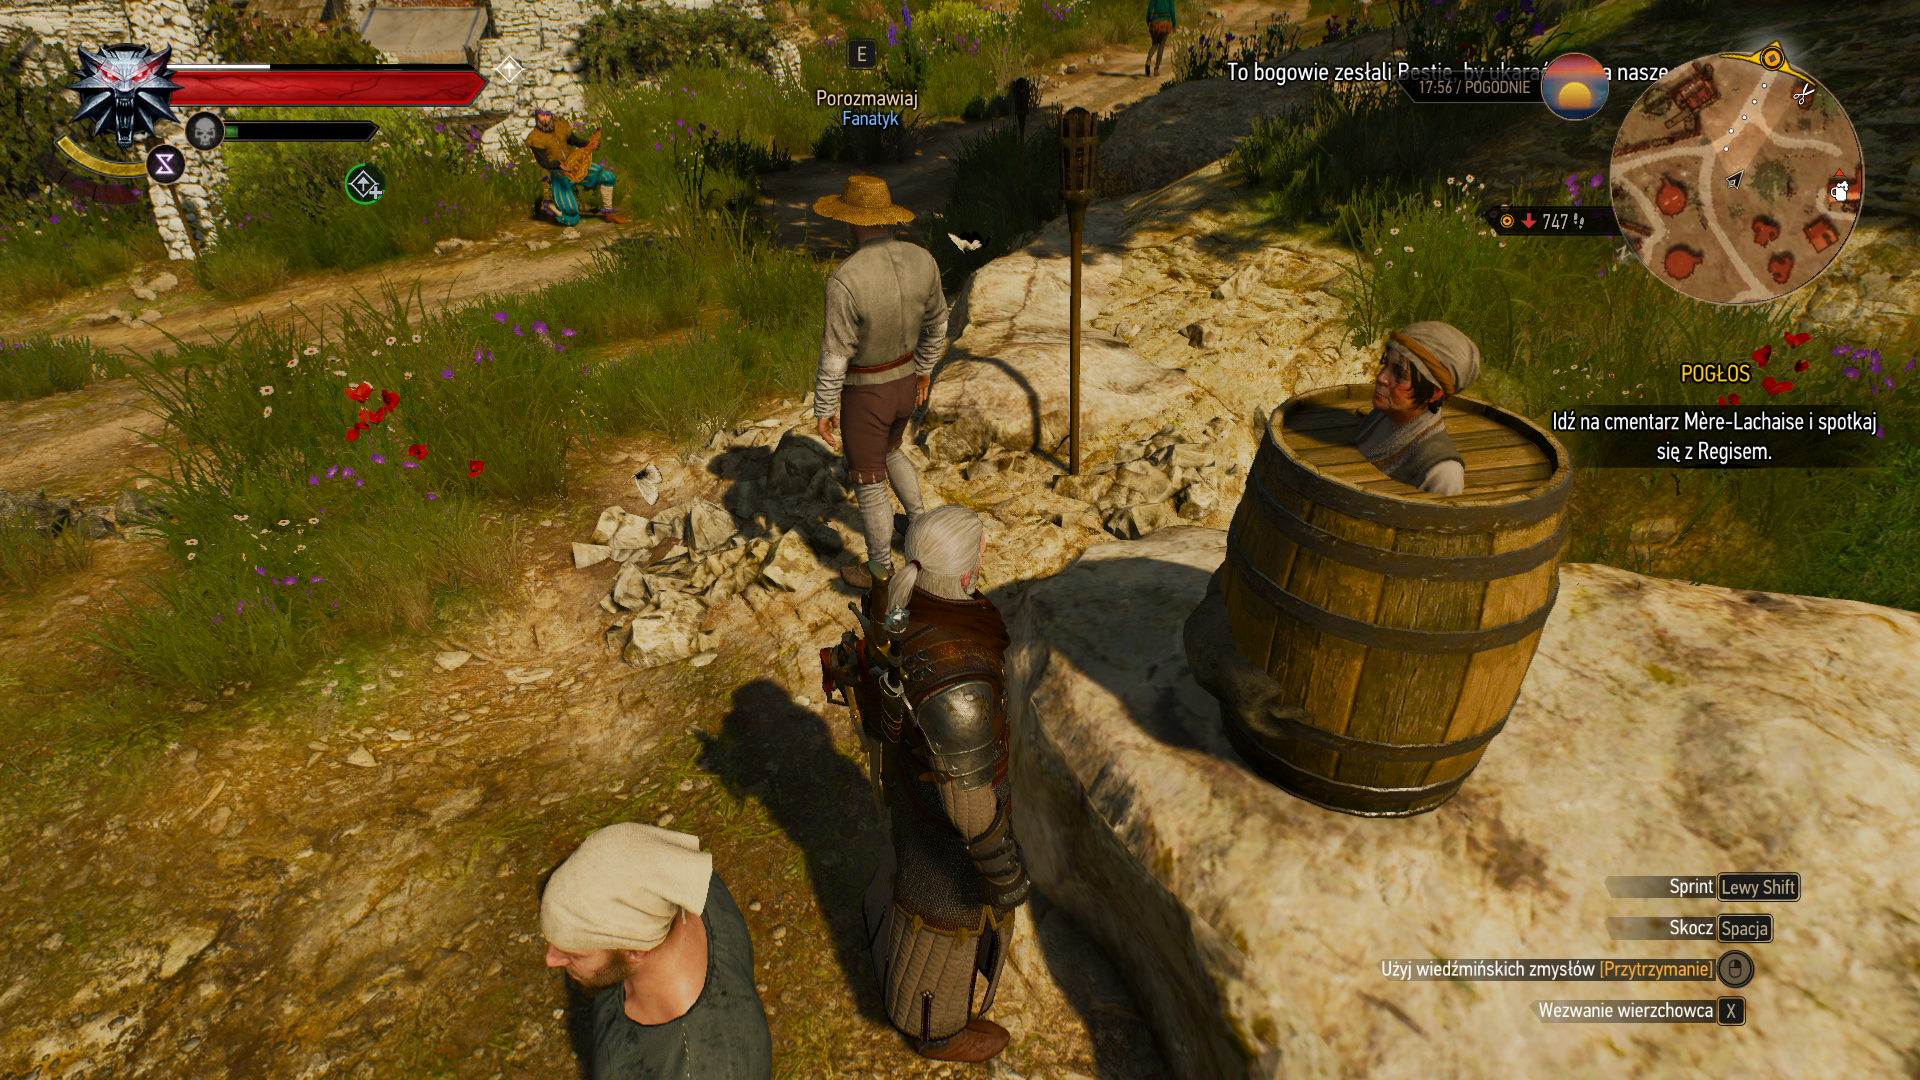 The Witcher 3 21.12.2018 21_51_28.png - The Witcher 3: Wild Hunt